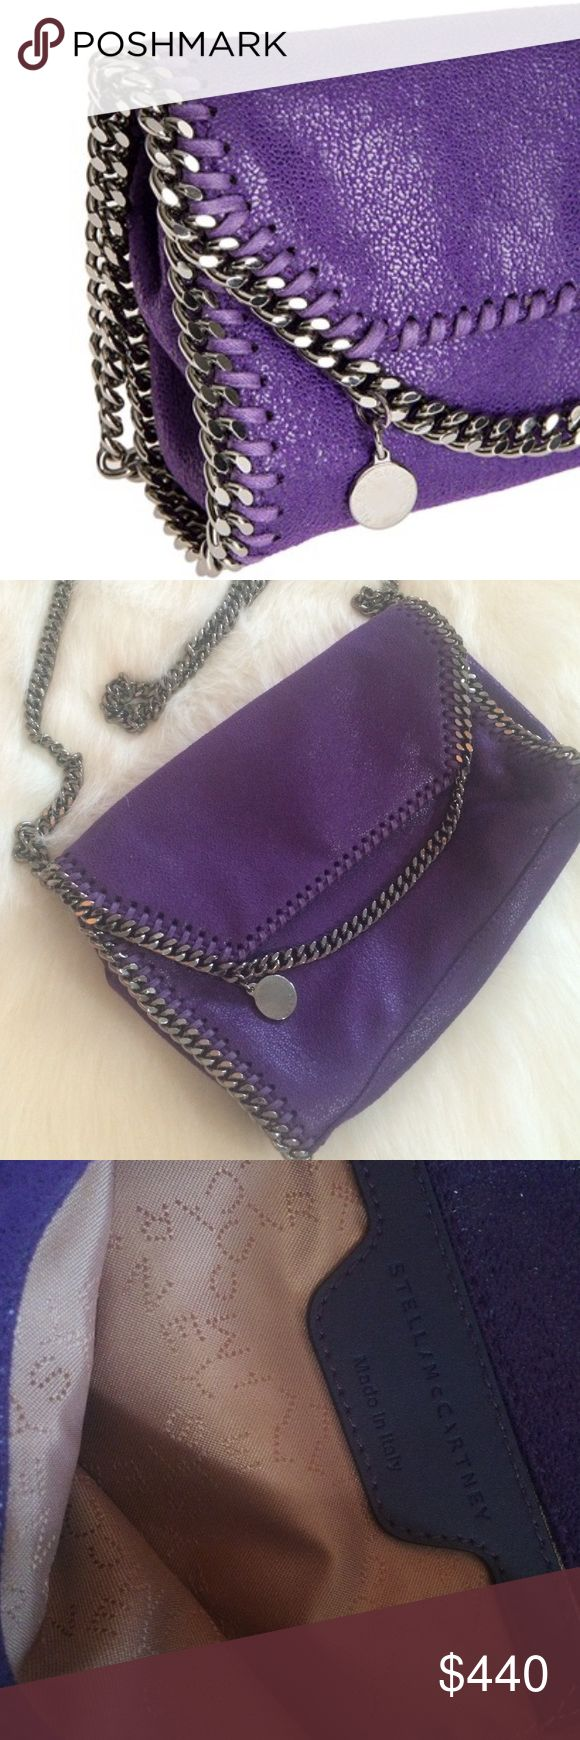 Stella McCartney Falabella Purse Authentic. Only used once. Purple with gunmetal hardware. I do not have a Stella McCartney dustbag but I'd be happy to ship the purse in a Tory Burch dustbag upon request. Stella McCartney Bags